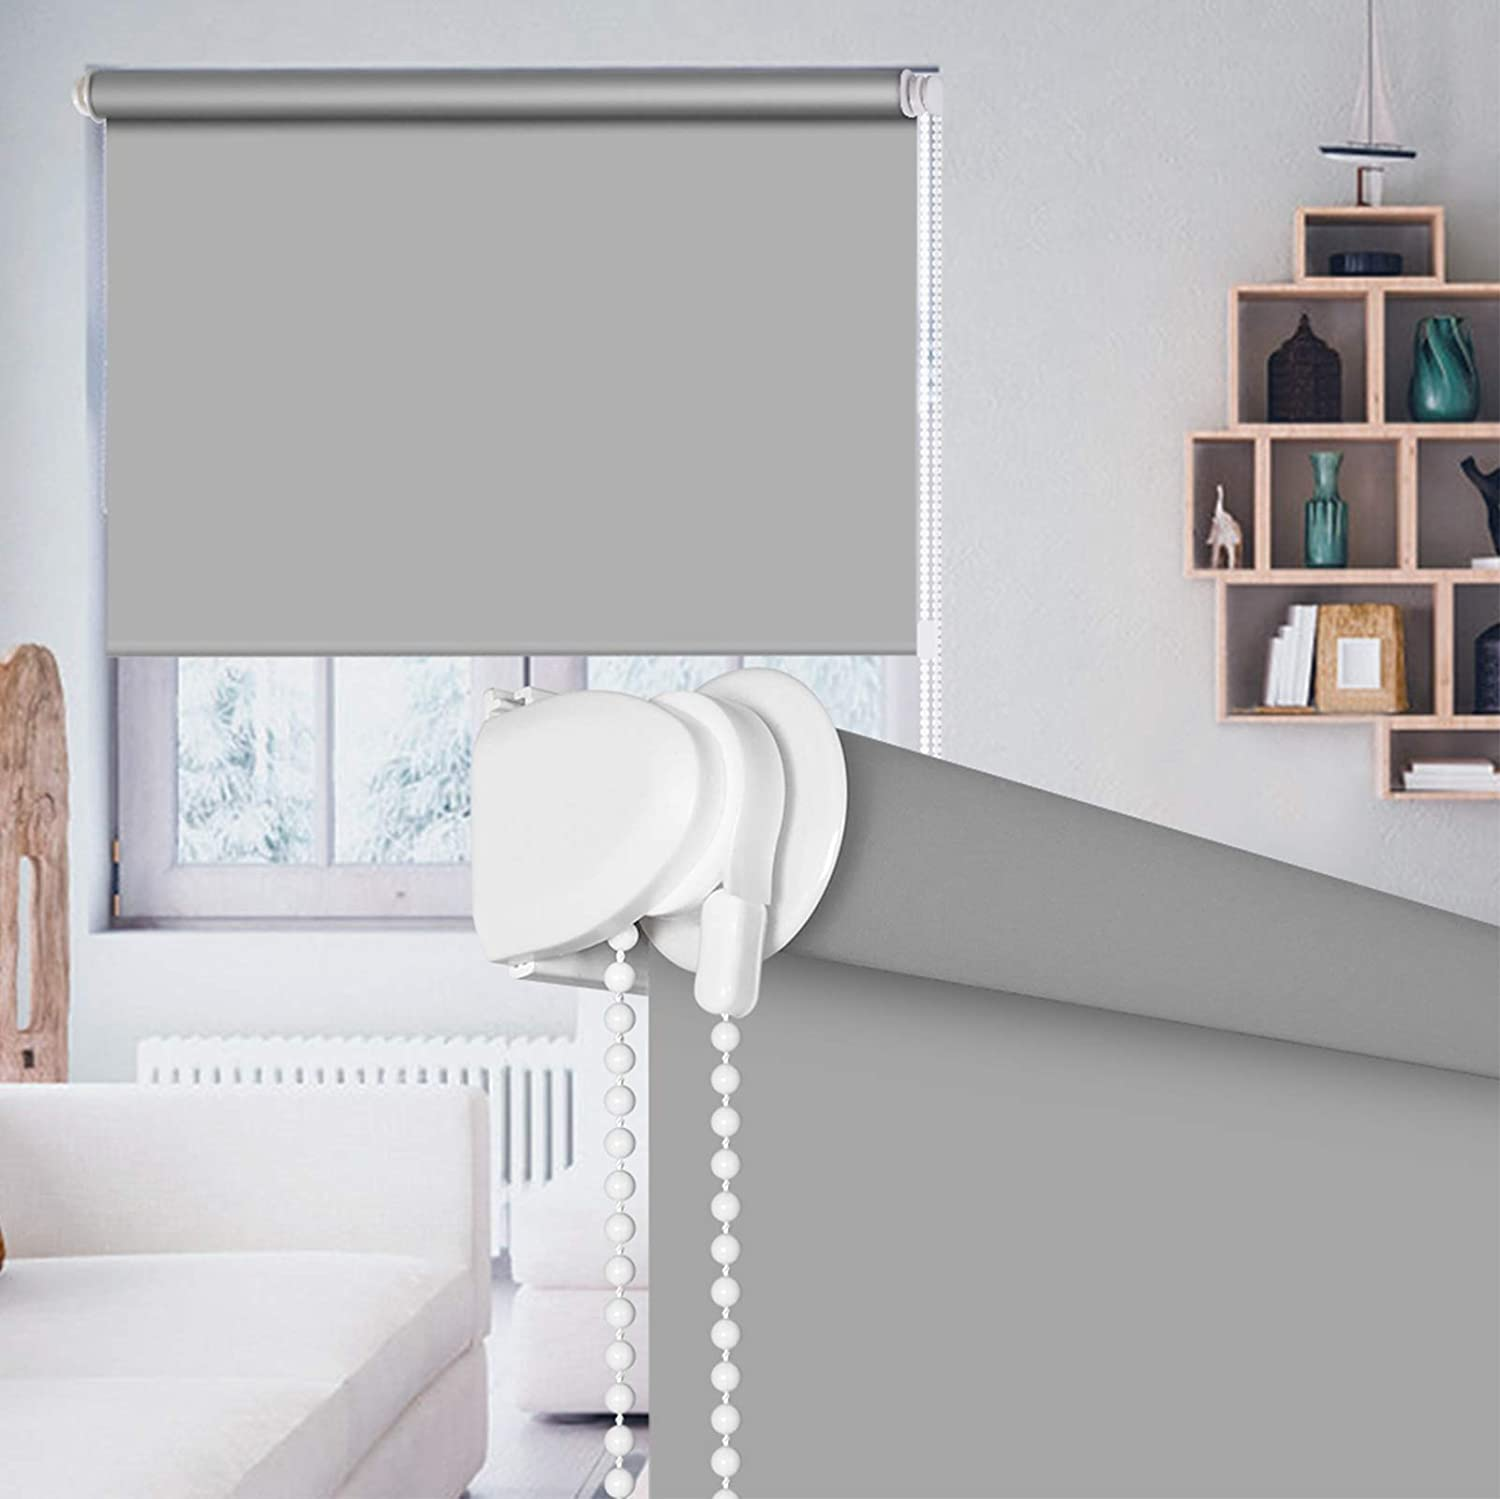 SEEYE Fabric Window Roller Shades Blind